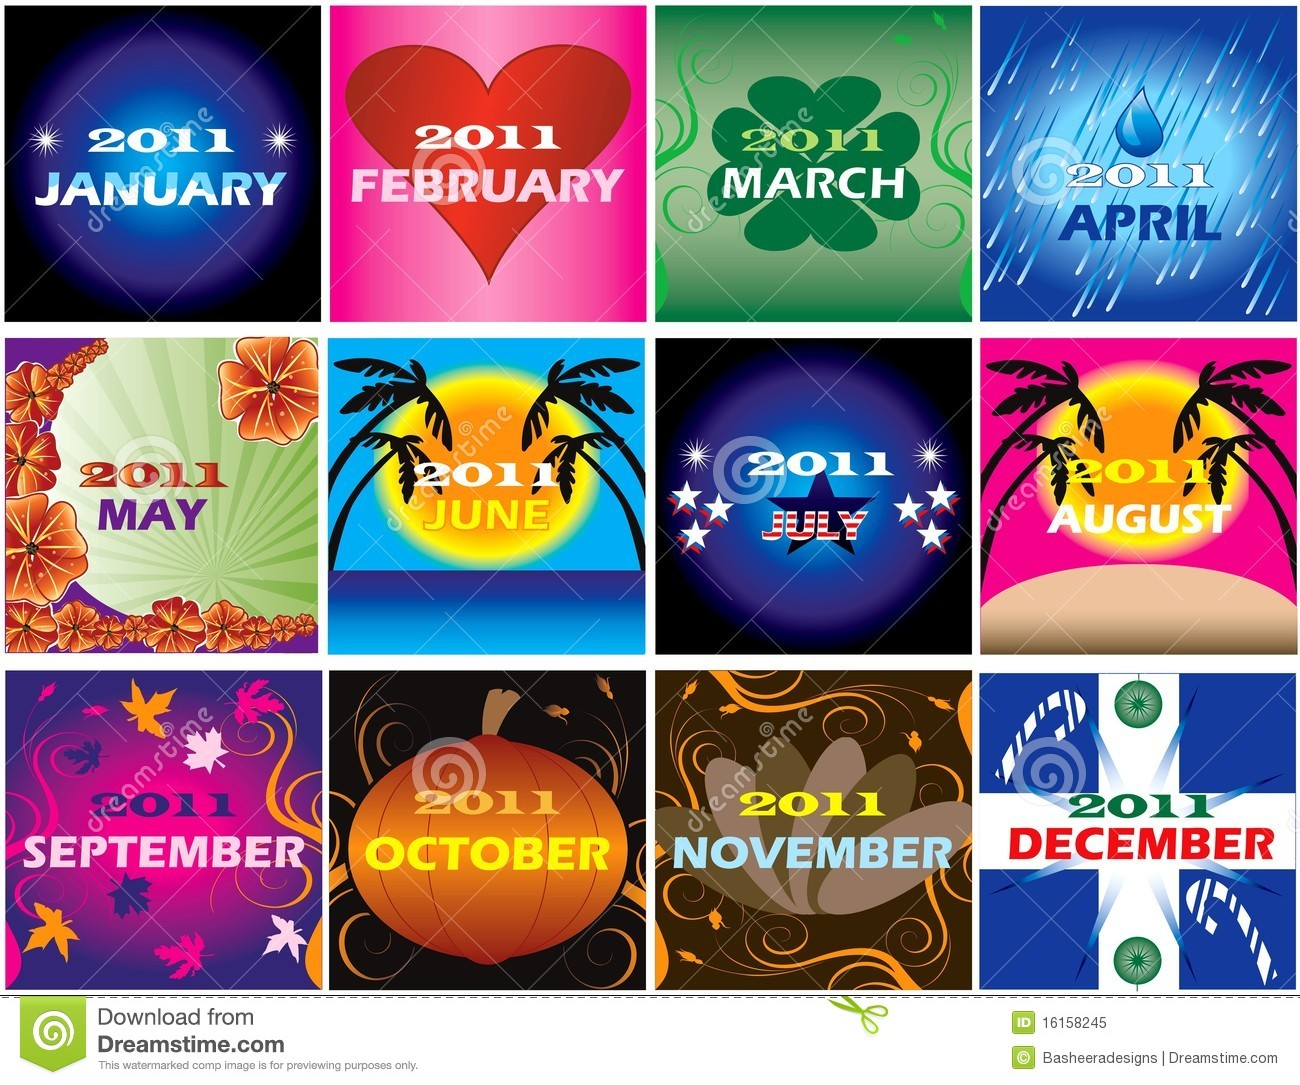 2011 decorative themed calendars royalty free stock photo us map clip art powerpoint us map clipart